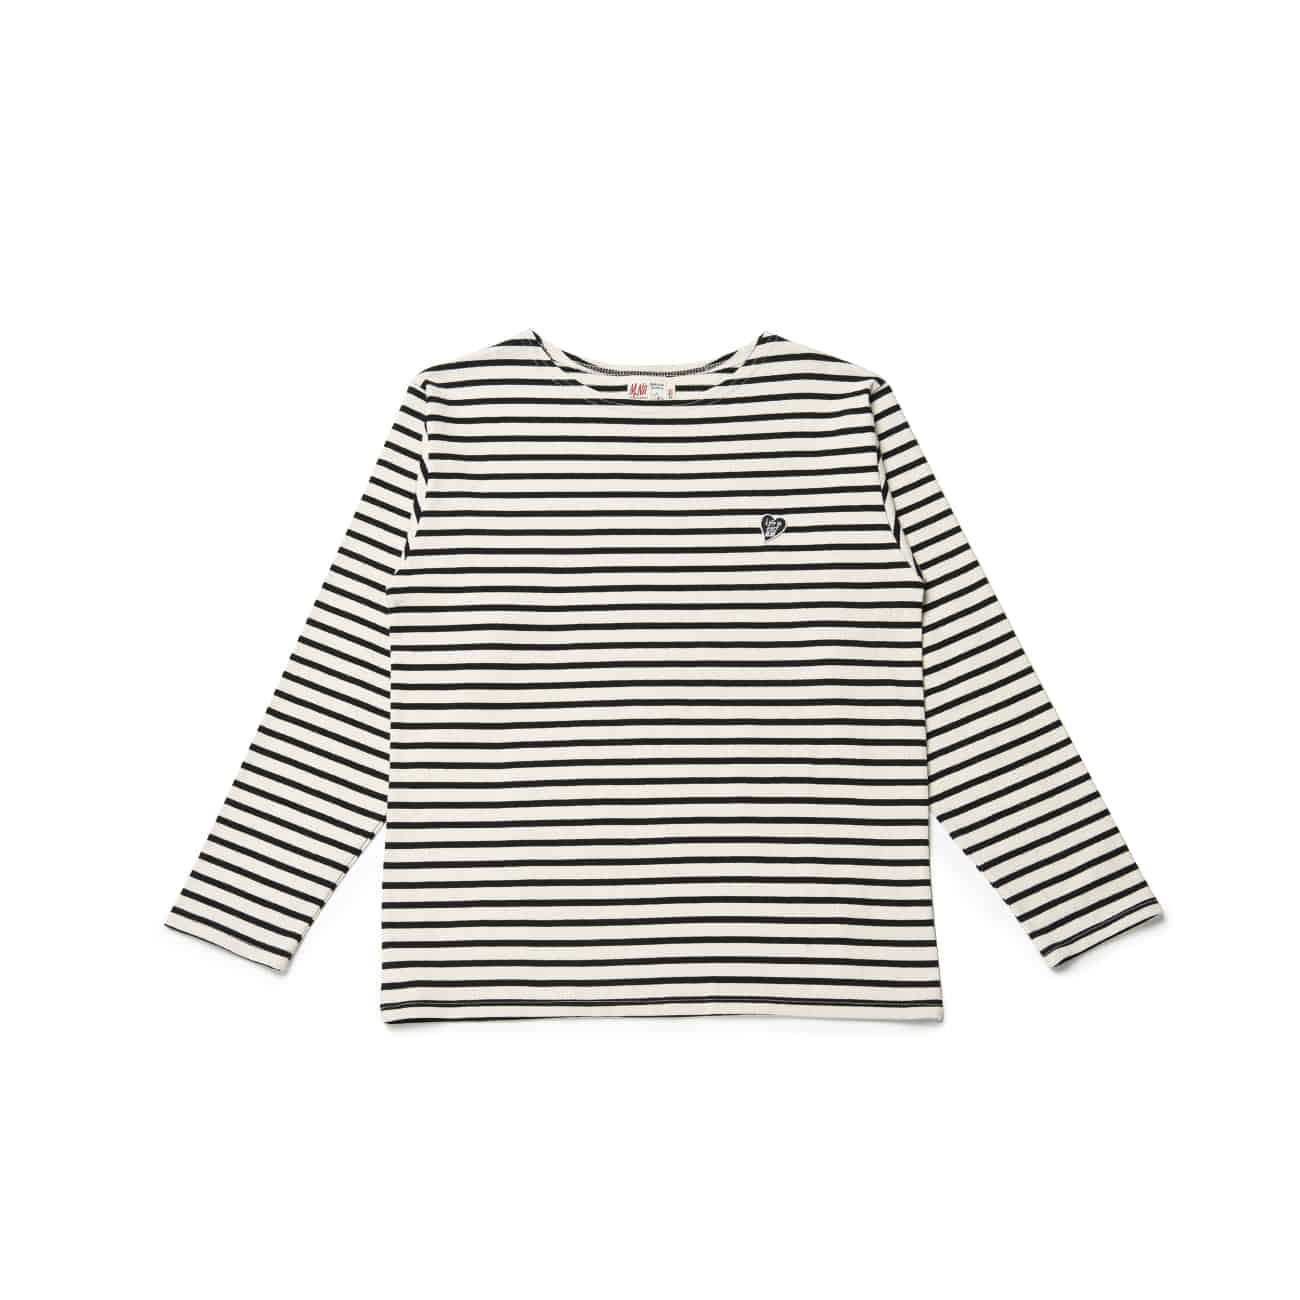 1950's Stripe T-Shirt